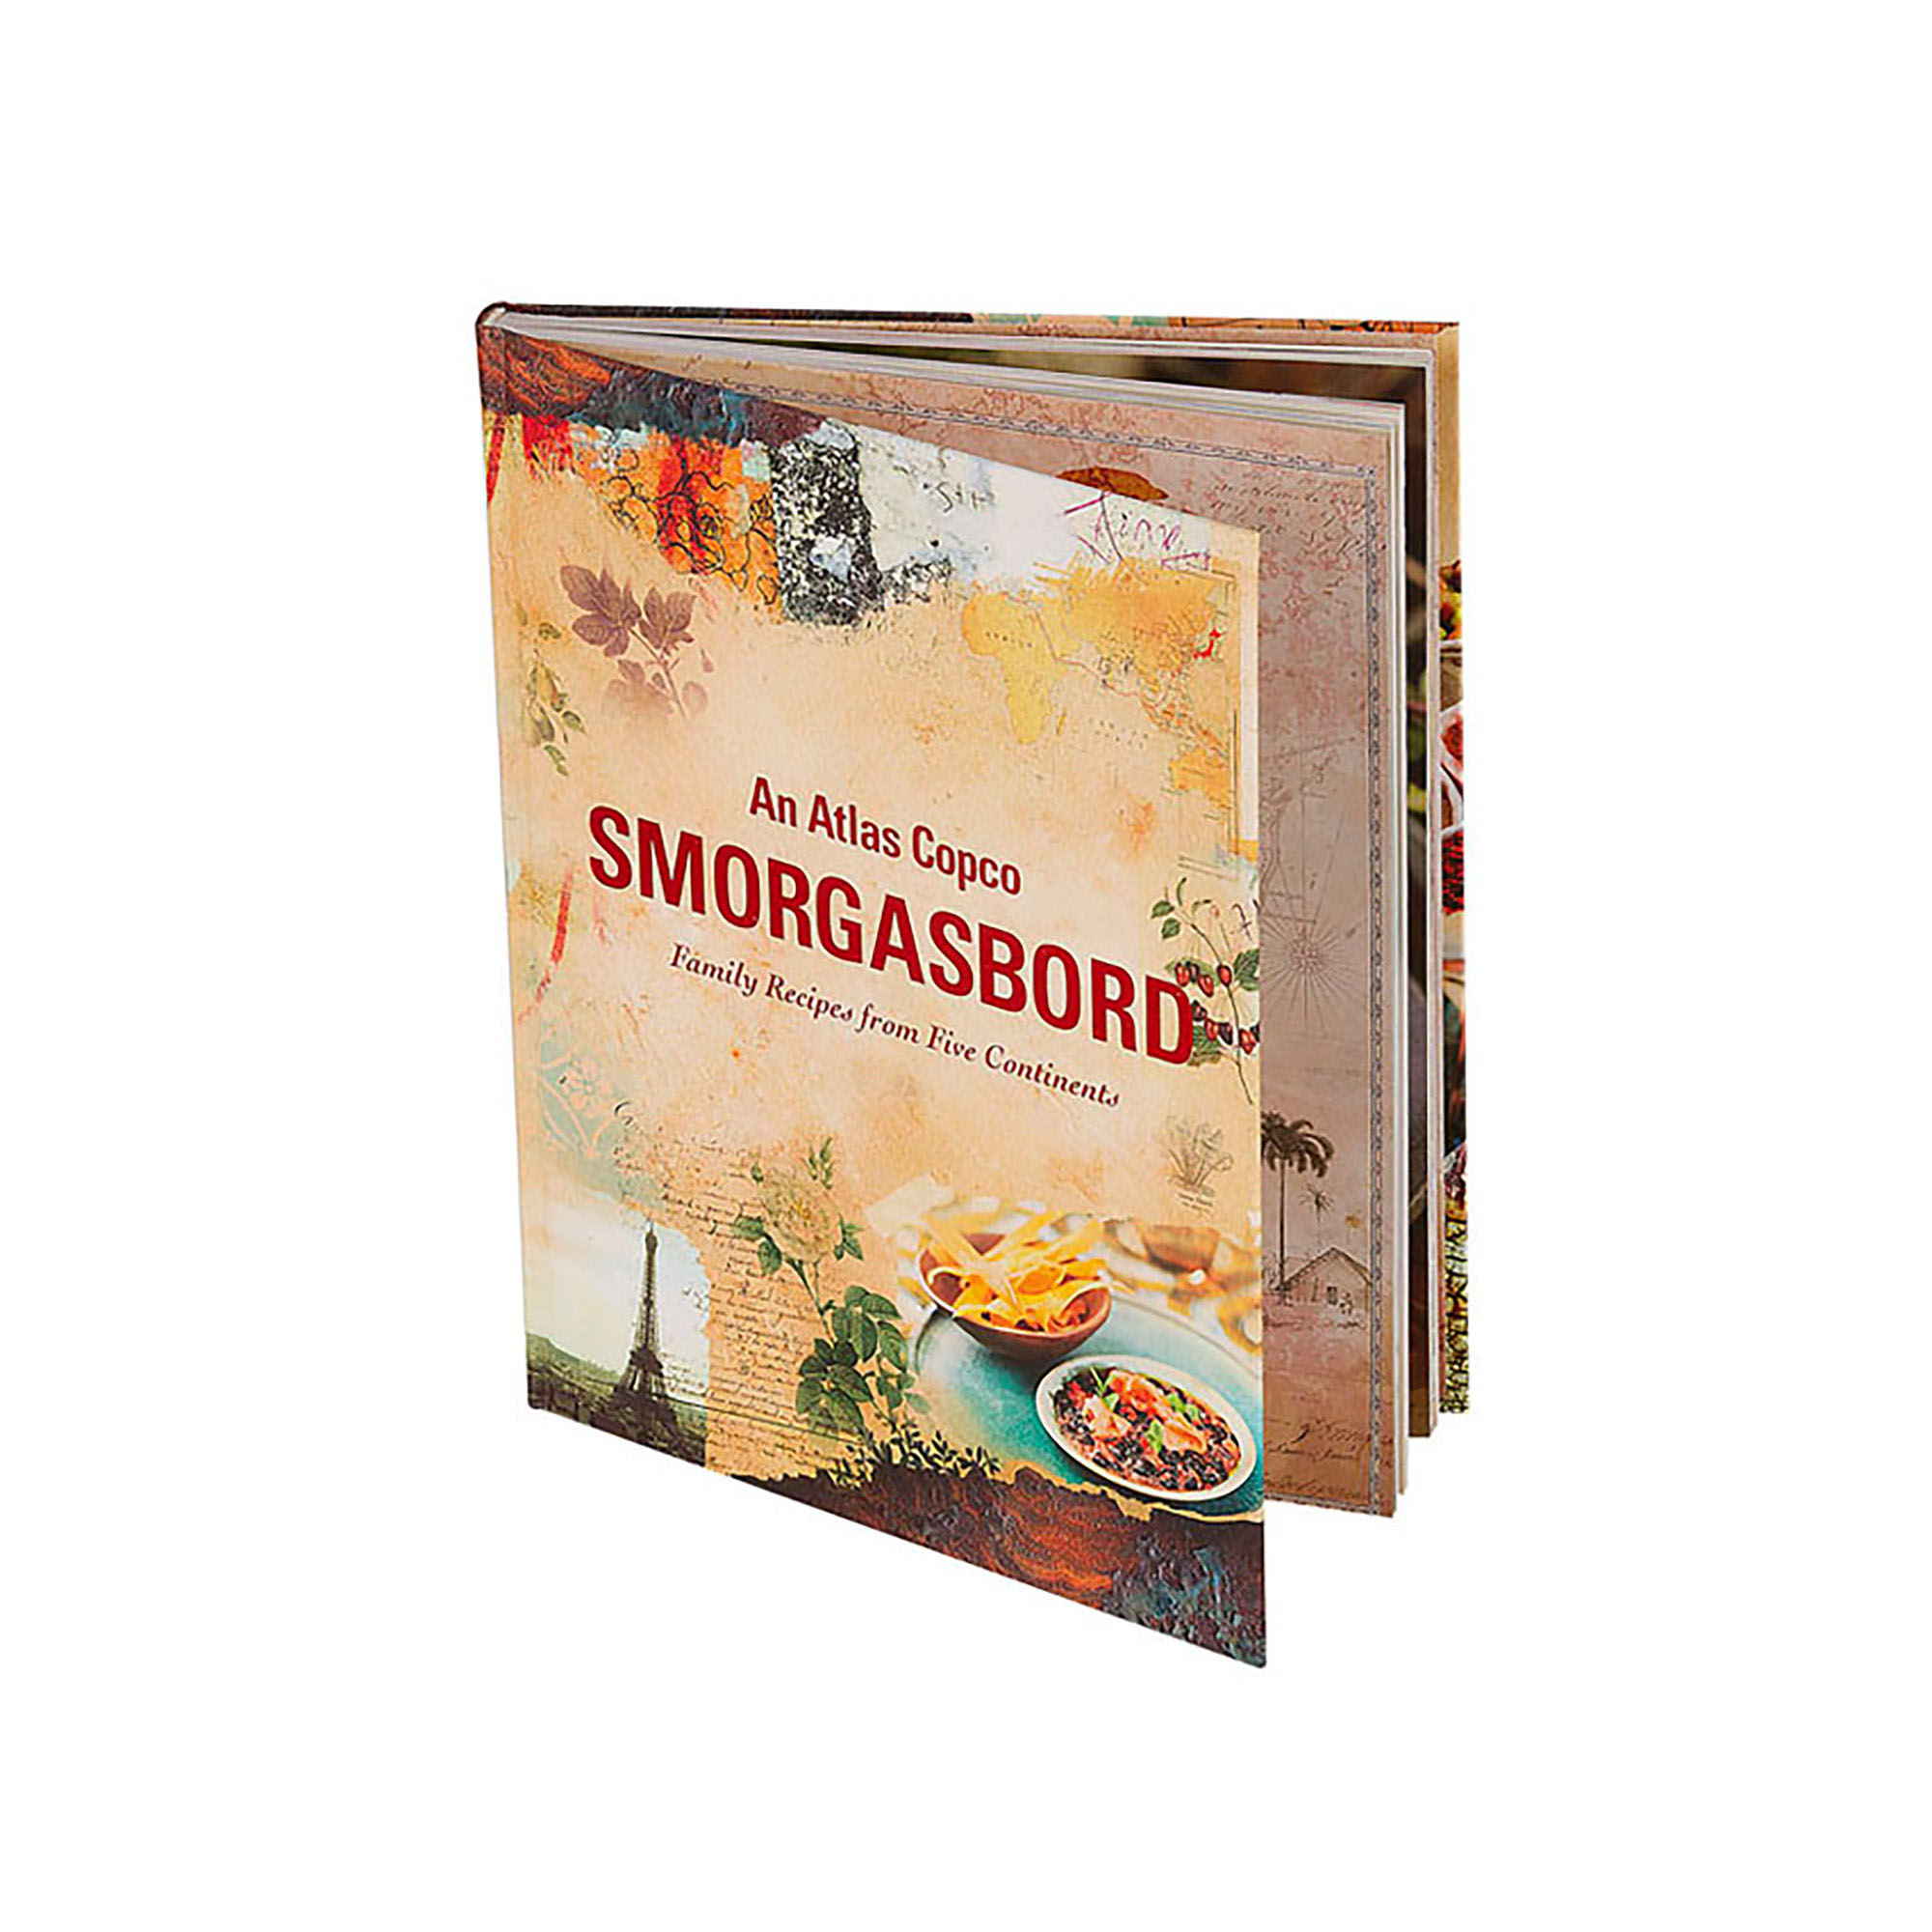 This cookbook includes more than 70 recipes from Atlas Copco families around the world. An Atlas Copco Smorgasbord celebrates the worlds unique cultures and traditions. It´s a cookbook from the heart, each recipe is a family favorite! Open any page, try out a new dish and experience new tastes and flavors from near and afar.